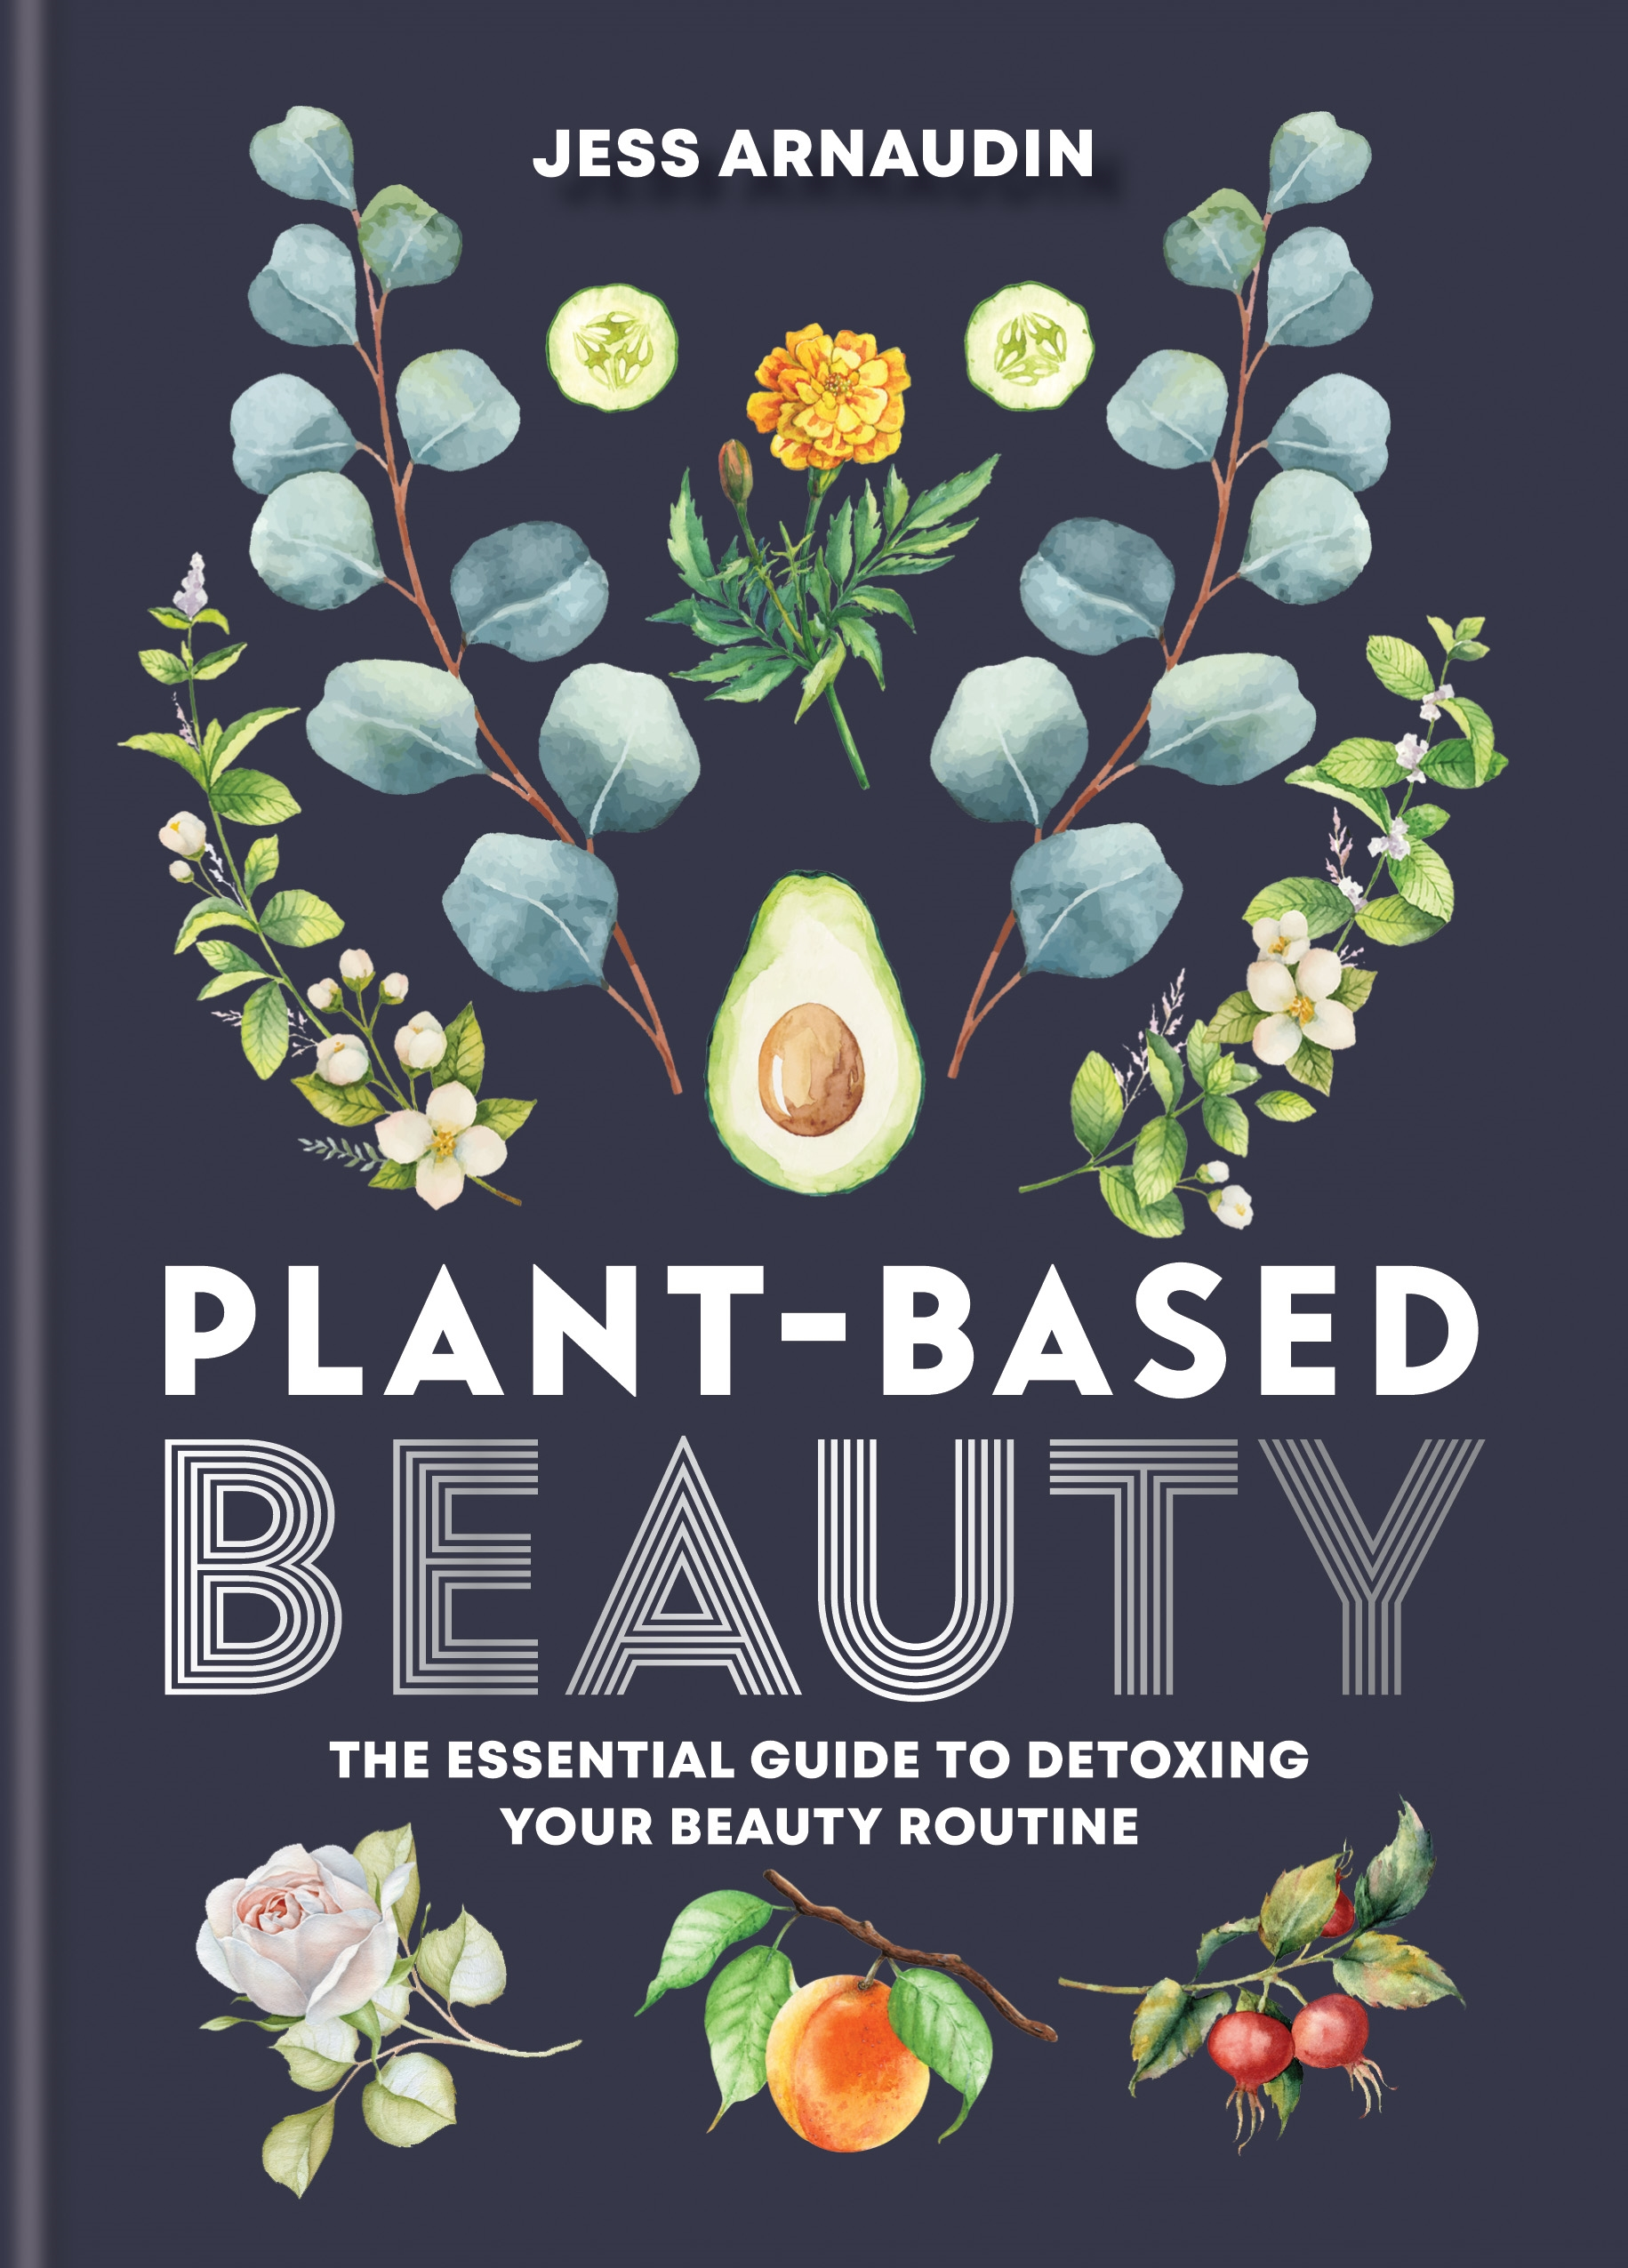 Plant-Based Beauty - Plant-based beauty is part of a growing global movement that is not just about the food we eat but the choices we make when it comes to what we wear and the beauty products we use. We are more aware than ever that our personal actions have an effect both on our own levels of wellness and the health of the world around us.Plant-Based Beauty is a practical companion to your daily routine, helping you to truly understand the ingredients you are putting on your skin and replacing them with self-care rituals to look forward to.Read more here!